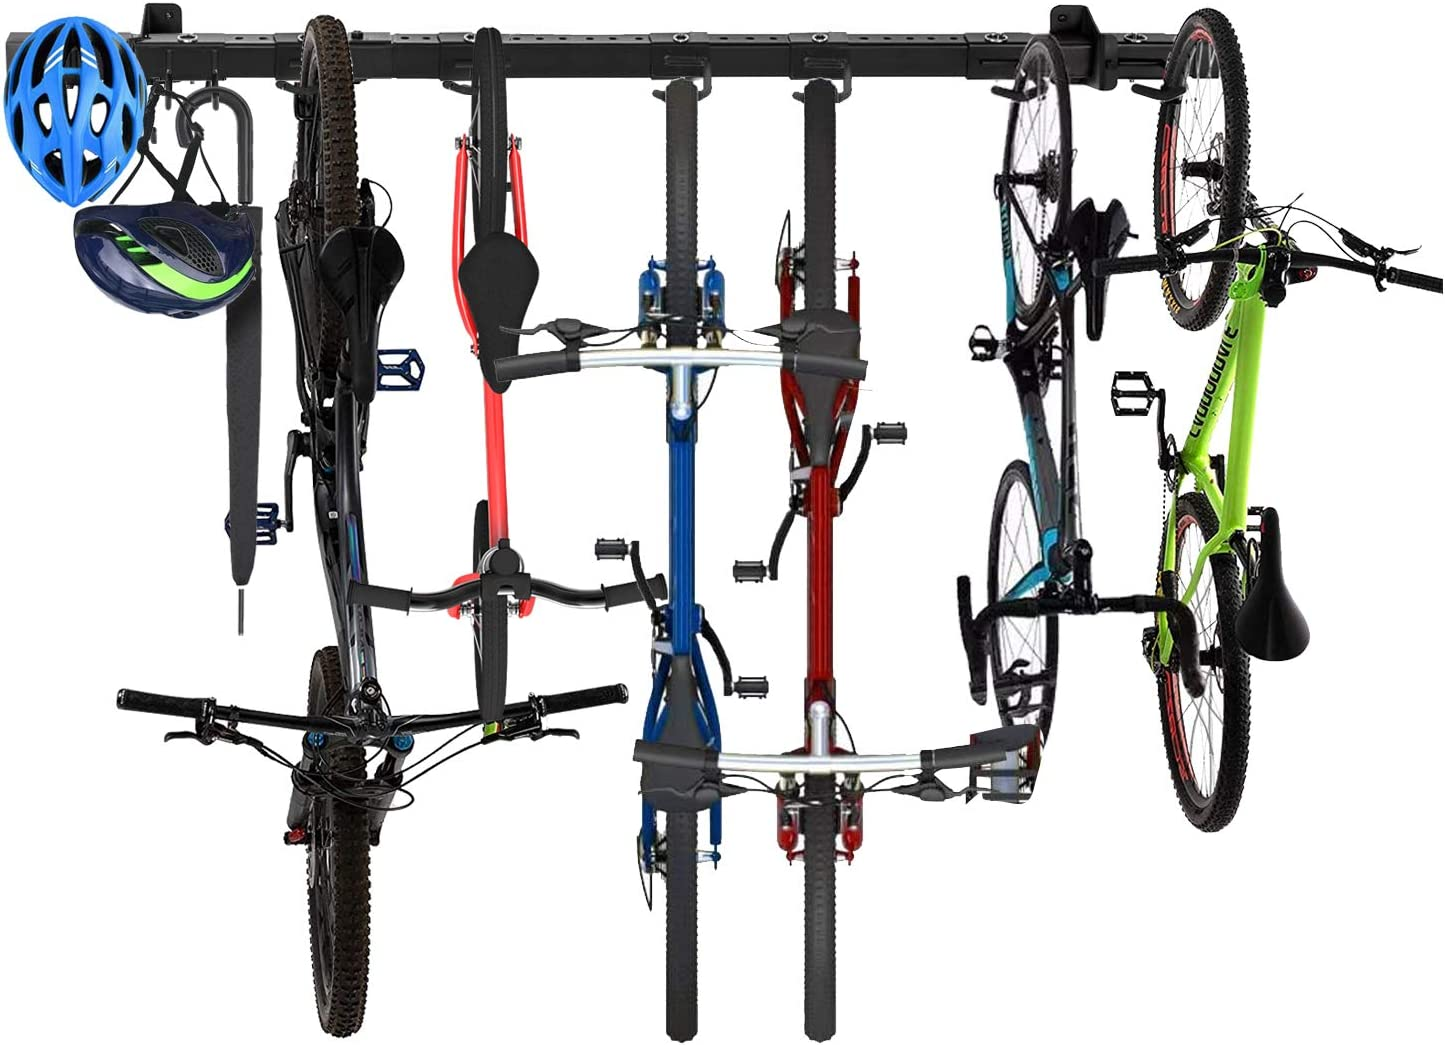 Omreid Tool & Bike Storage Rack,Adjustable Wall Mount Tools Storage System Tools and Bike&Sports Equipment Wall Hanger Mount,Home and Garage ,Hold up to 6 Bicycles (8 hooks, 60 inch)